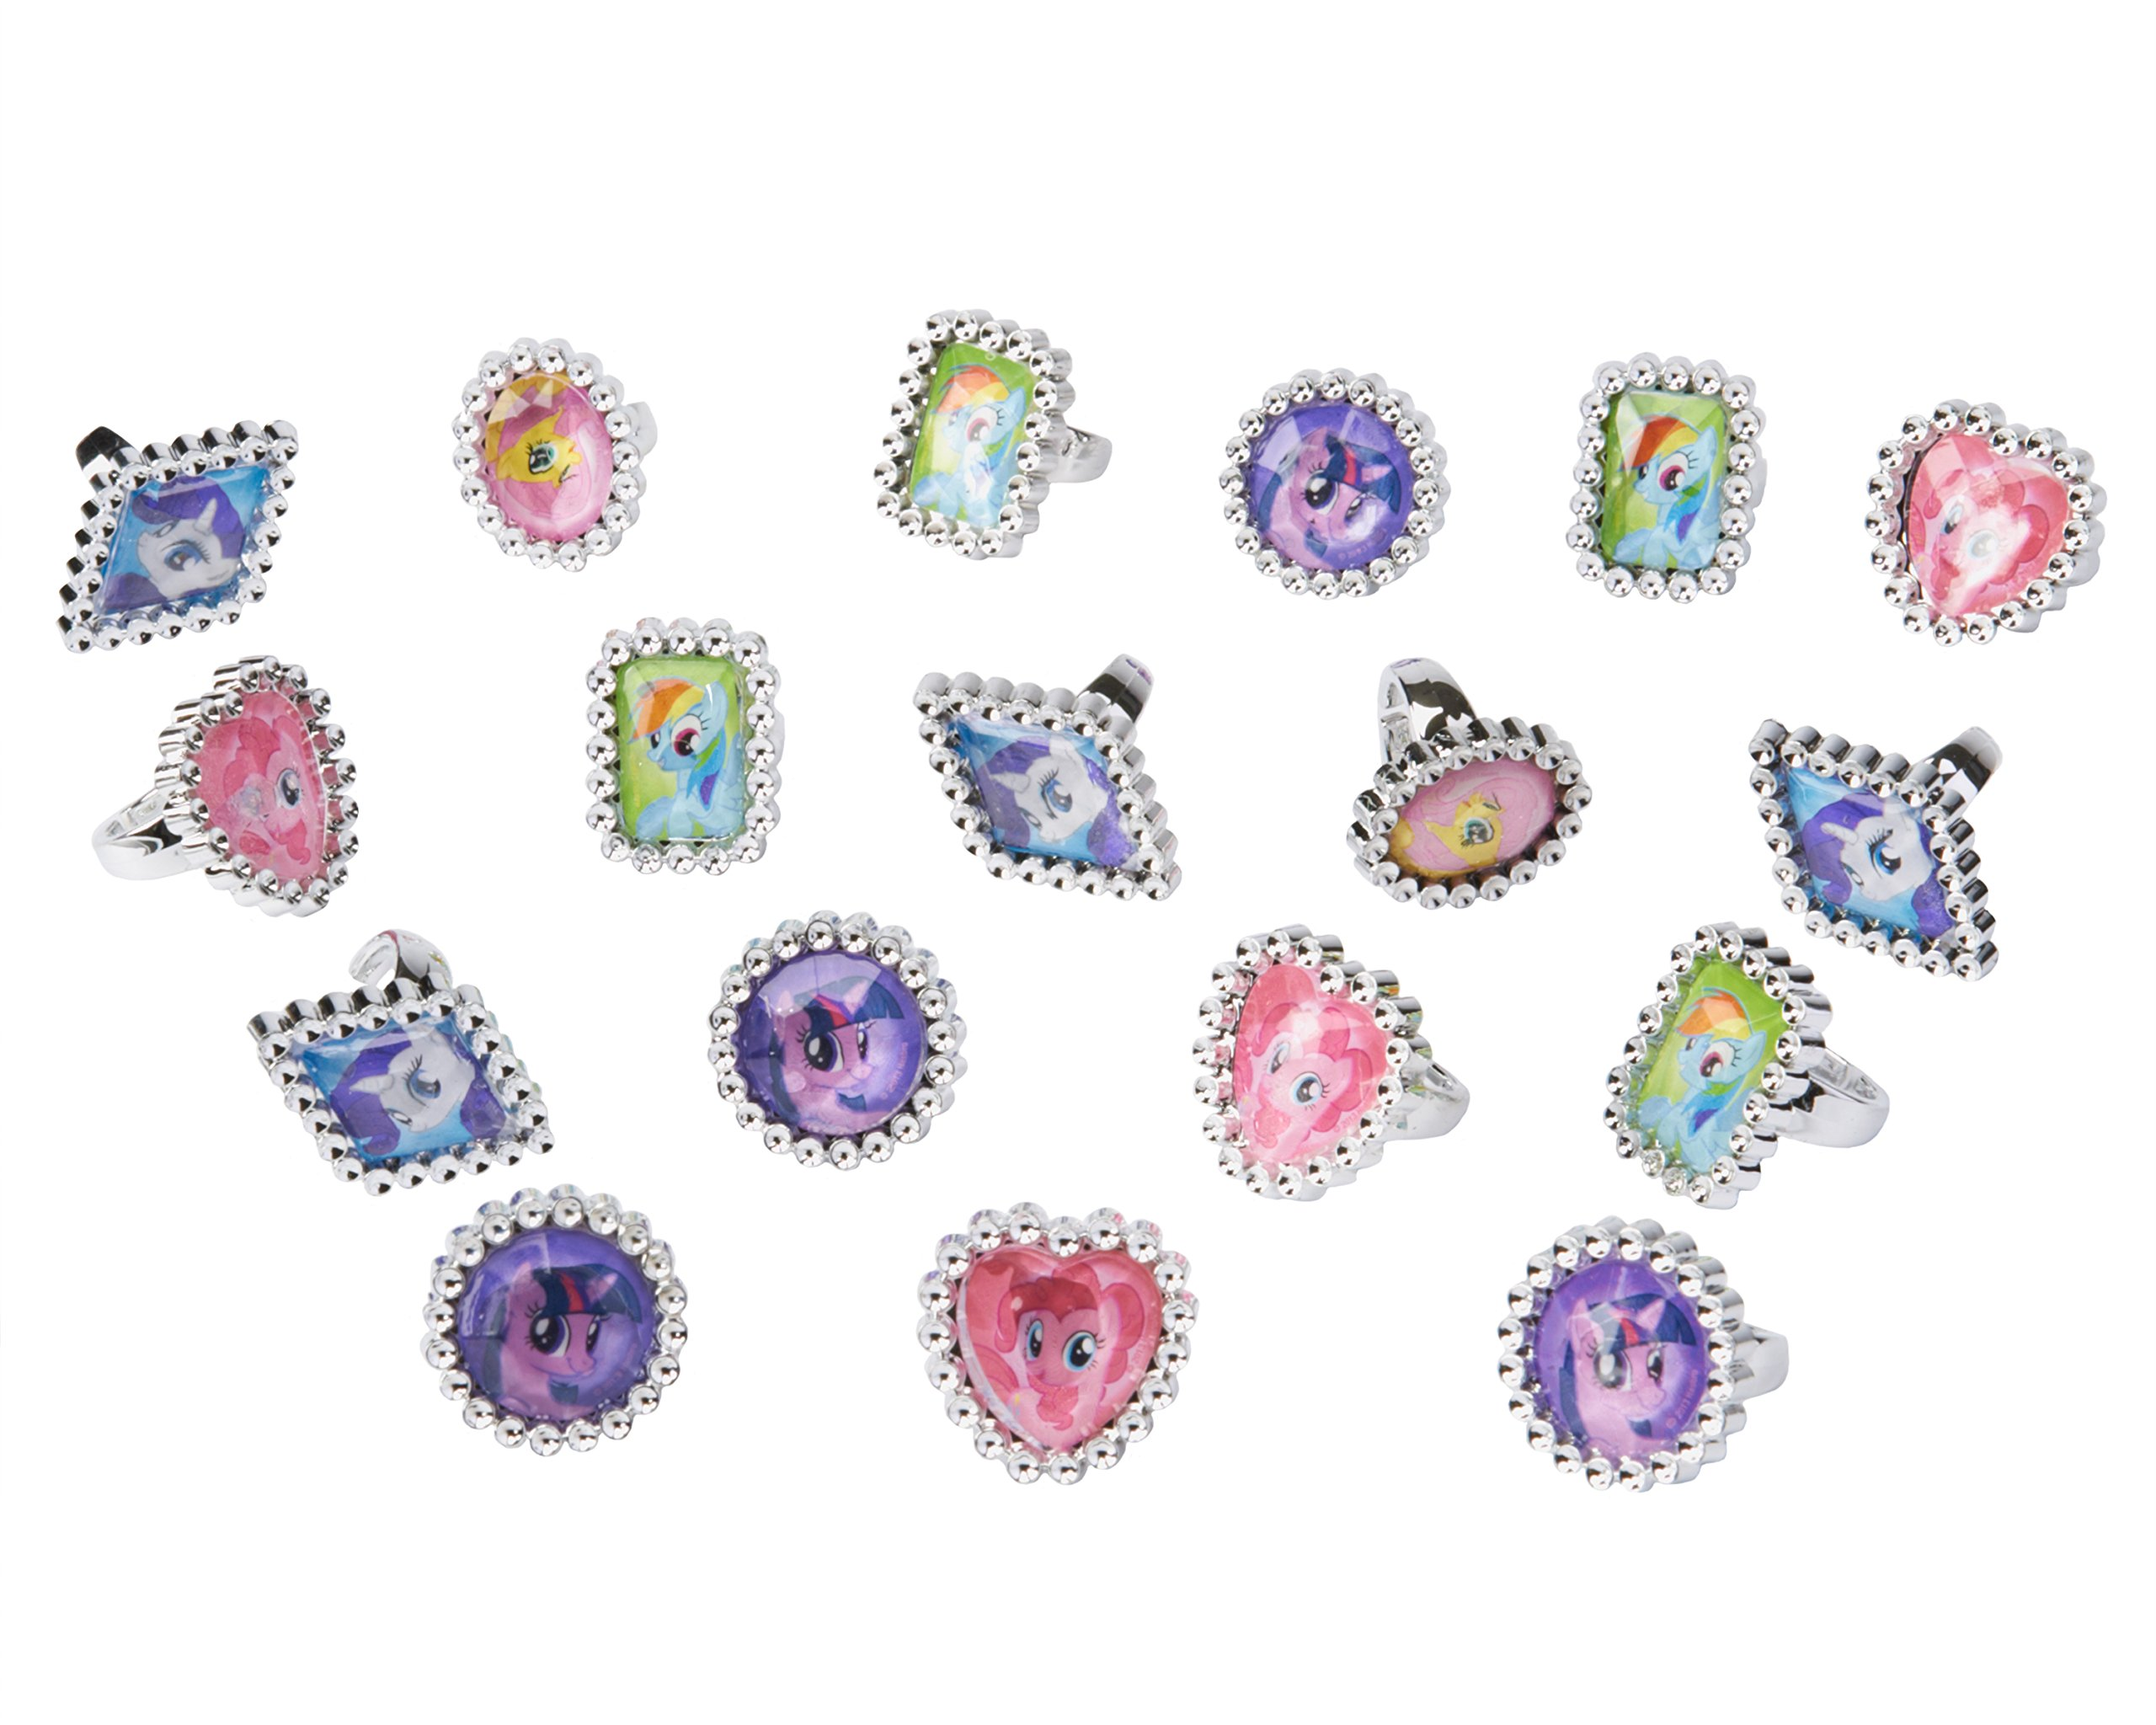 American Greetings My Little Pony Jewel Rings (18 Count)